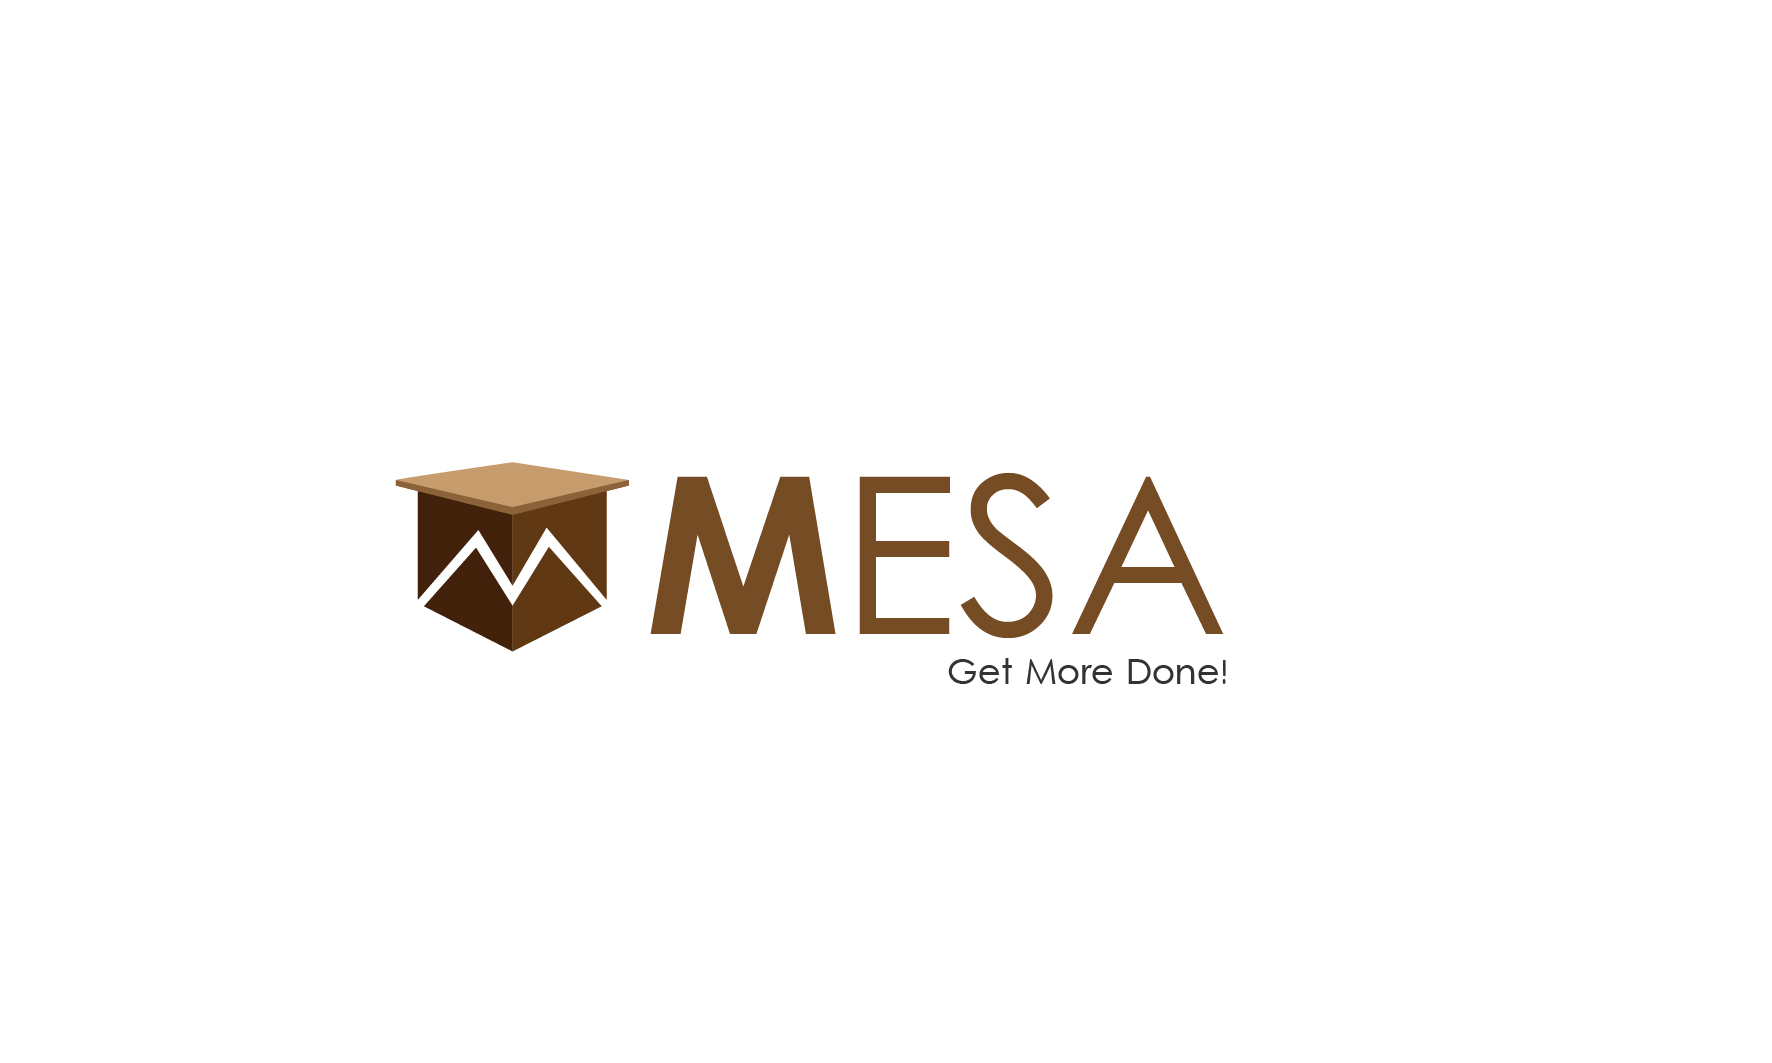 Logo Design by 3draw - Entry No. 152 in the Logo Design Contest Logo Design for Mesa.